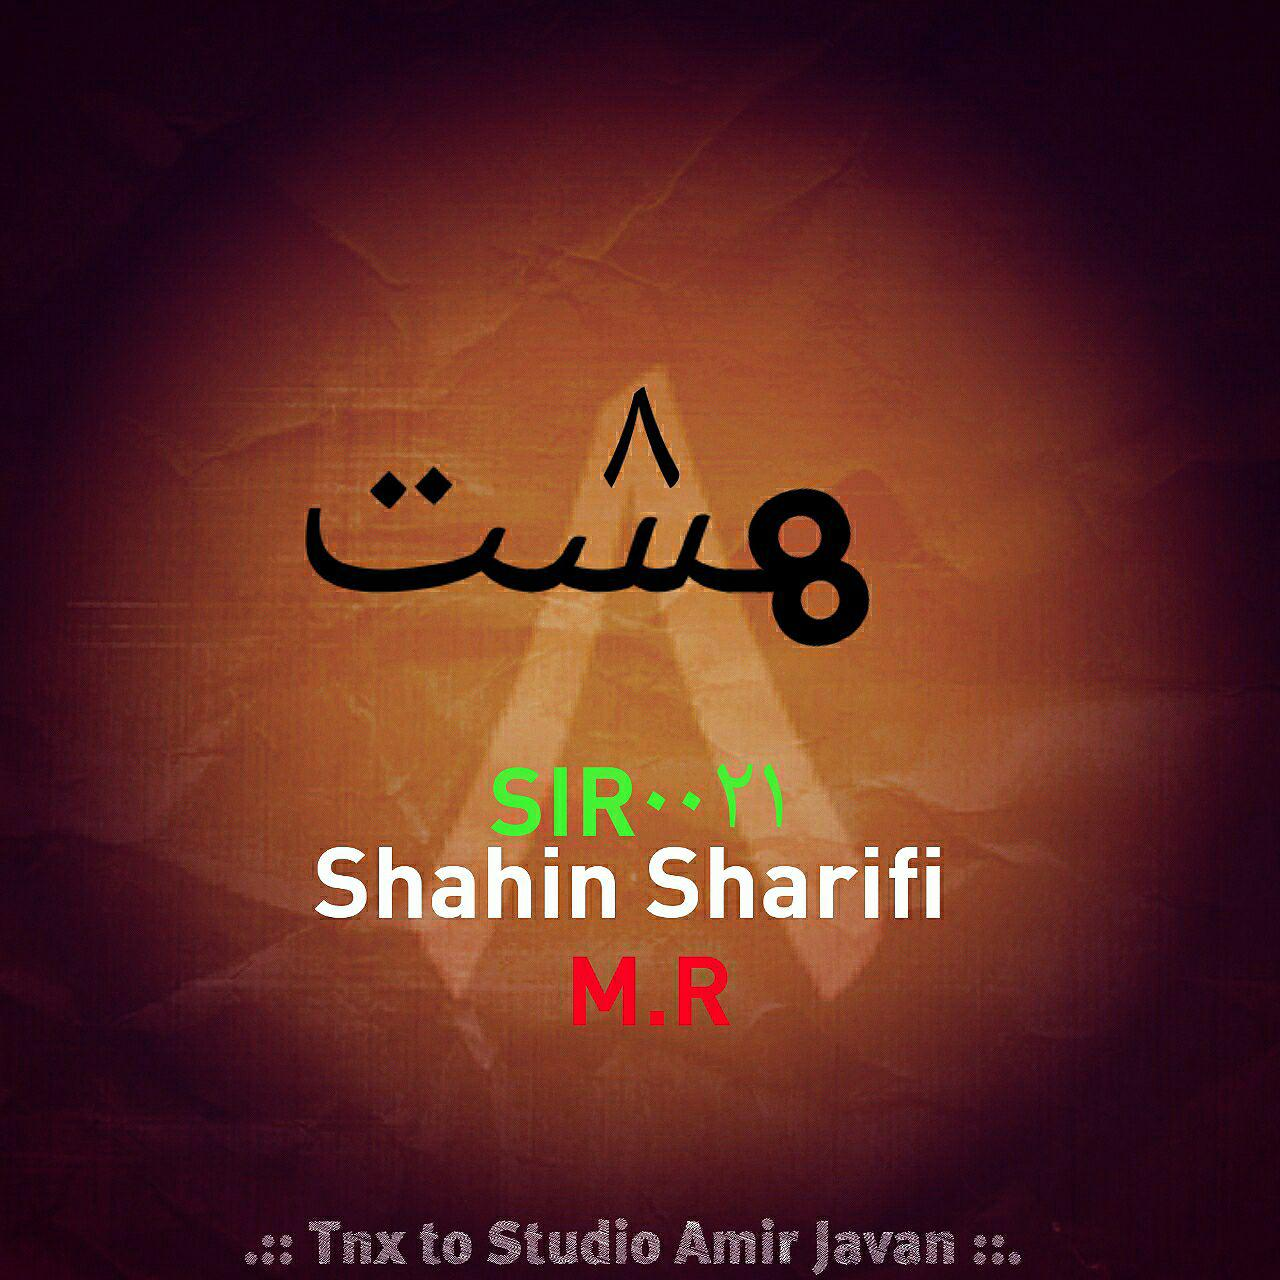 SIR0021 ft. Shahin Sharifi & M.R - 8